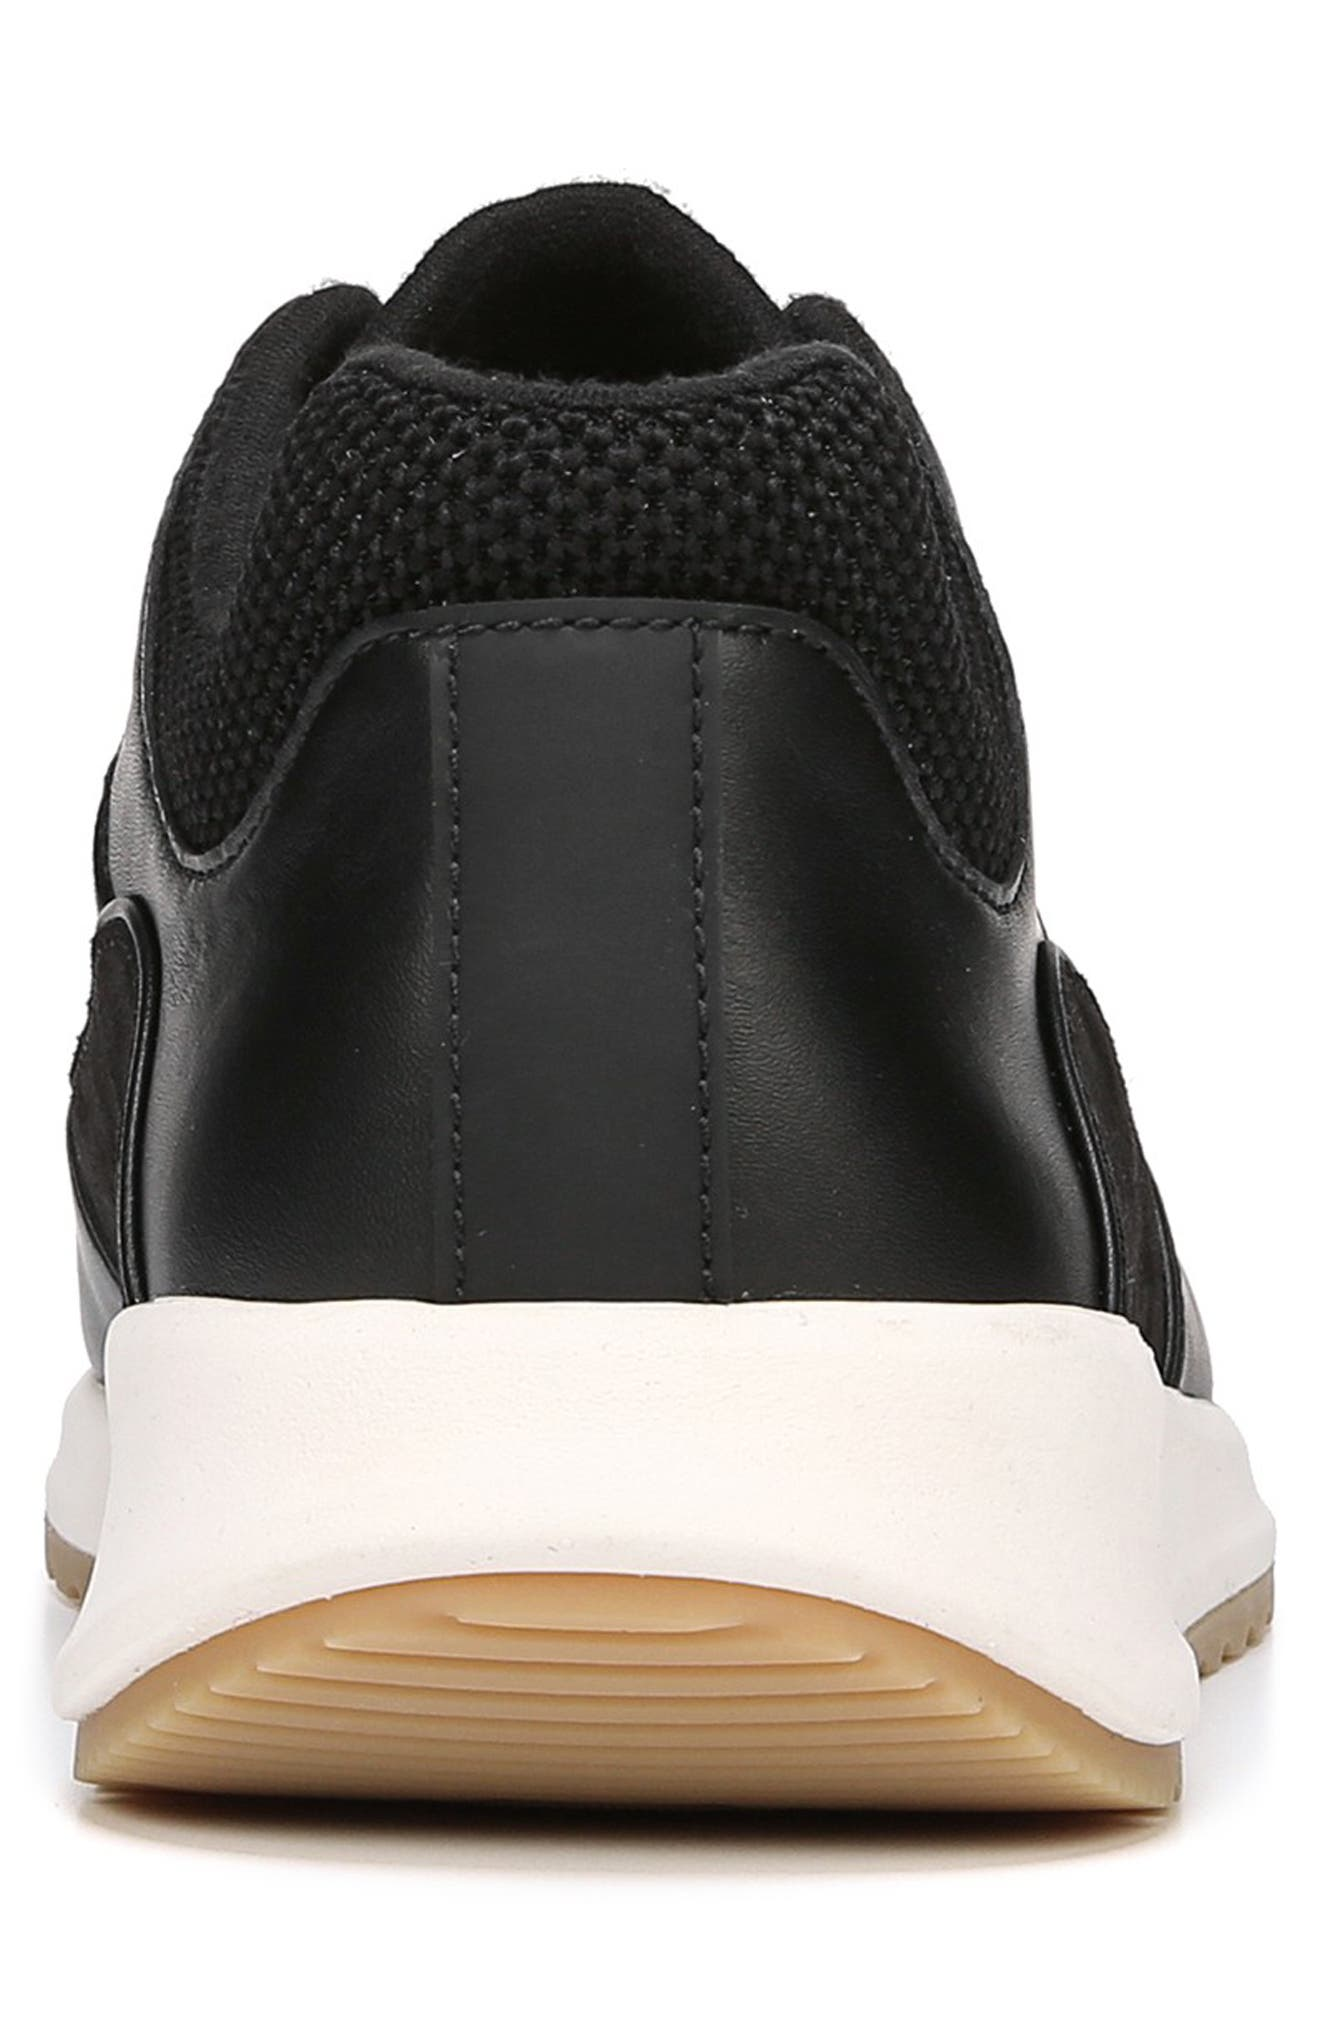 Griffin Sneaker,                             Alternate thumbnail 7, color,                             BLACK/ MADDOX